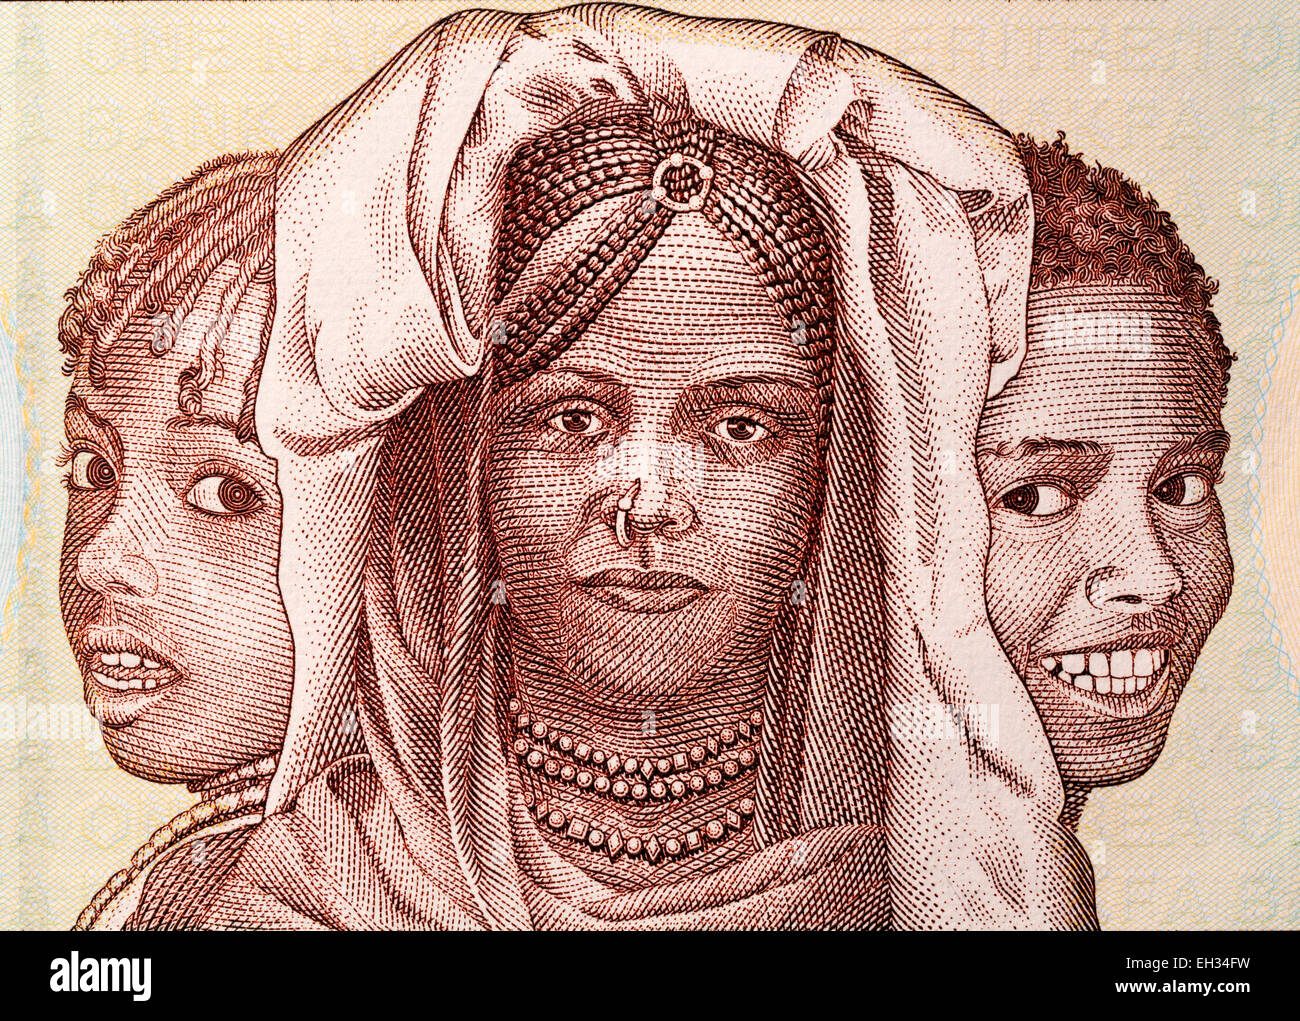 Children from 1 nakfa banknote, Eritrea, 1997 - Stock Image